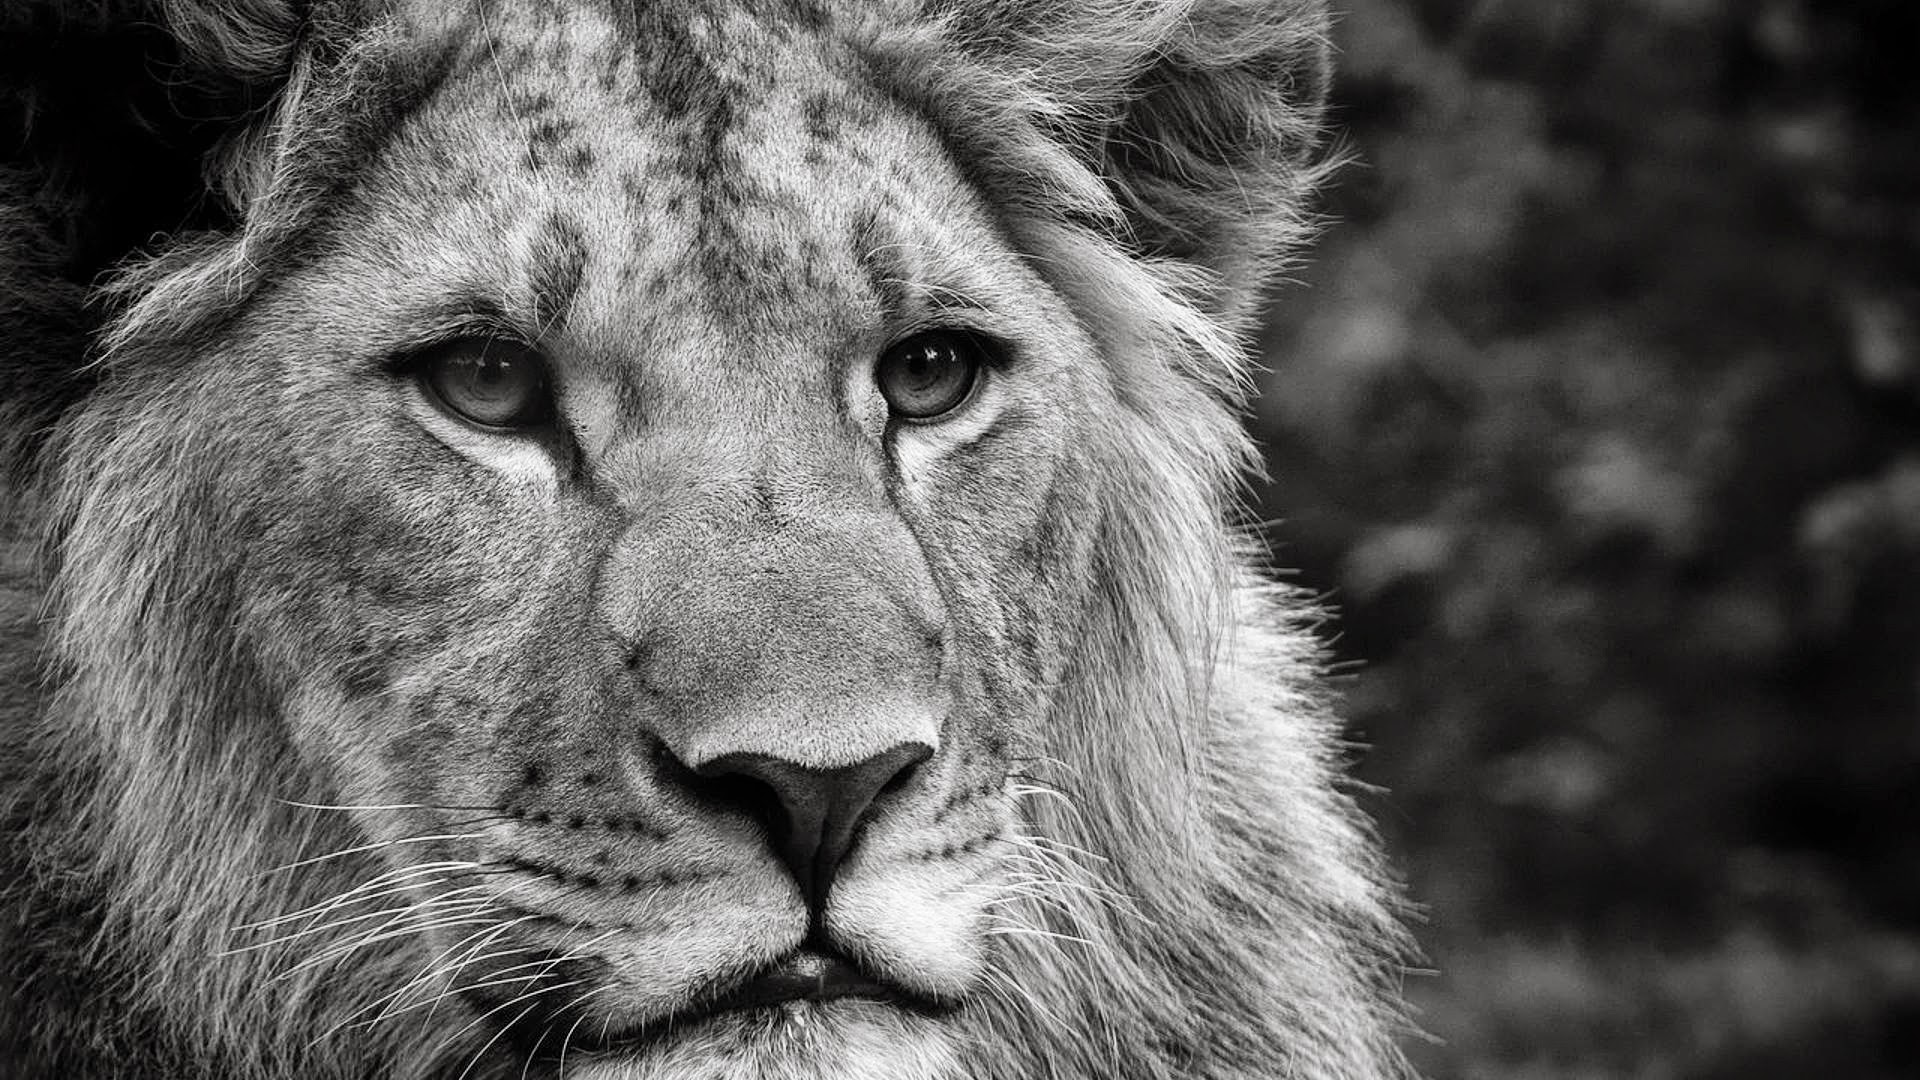 Terrific Lion Animal Wallpapers Download Animal Wallpaper Hd Download Full Size Wallpapers Free For Walls Mobile Home Murals Desktop wallpaper